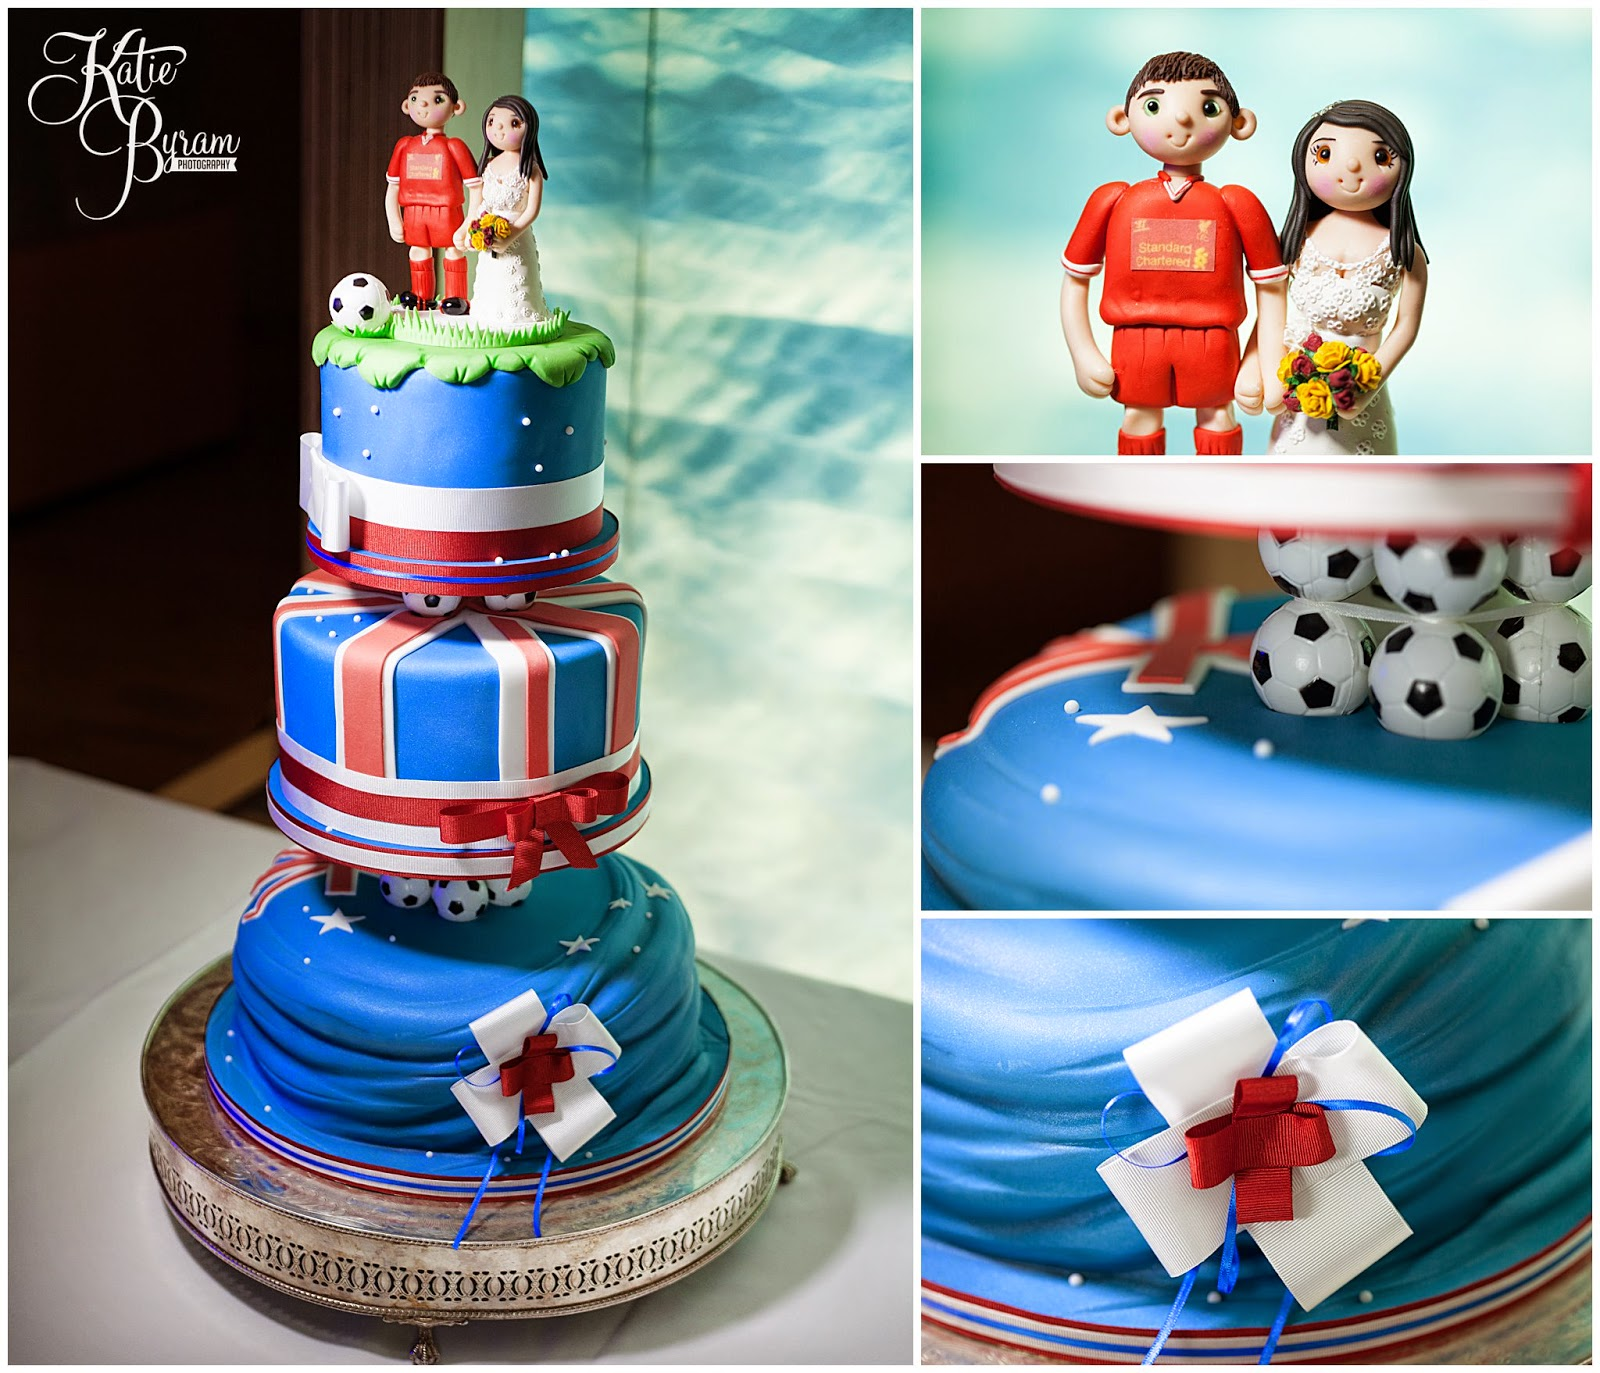 football wedding cake, novelty wedding cake, football cake topper, hancock museum wedding, great north museum wedding, quirky wedding, katie byram photography, city centre wedding newcastle upon tyne, wedding venues newcastle, t-rex wedding, museum wedding,